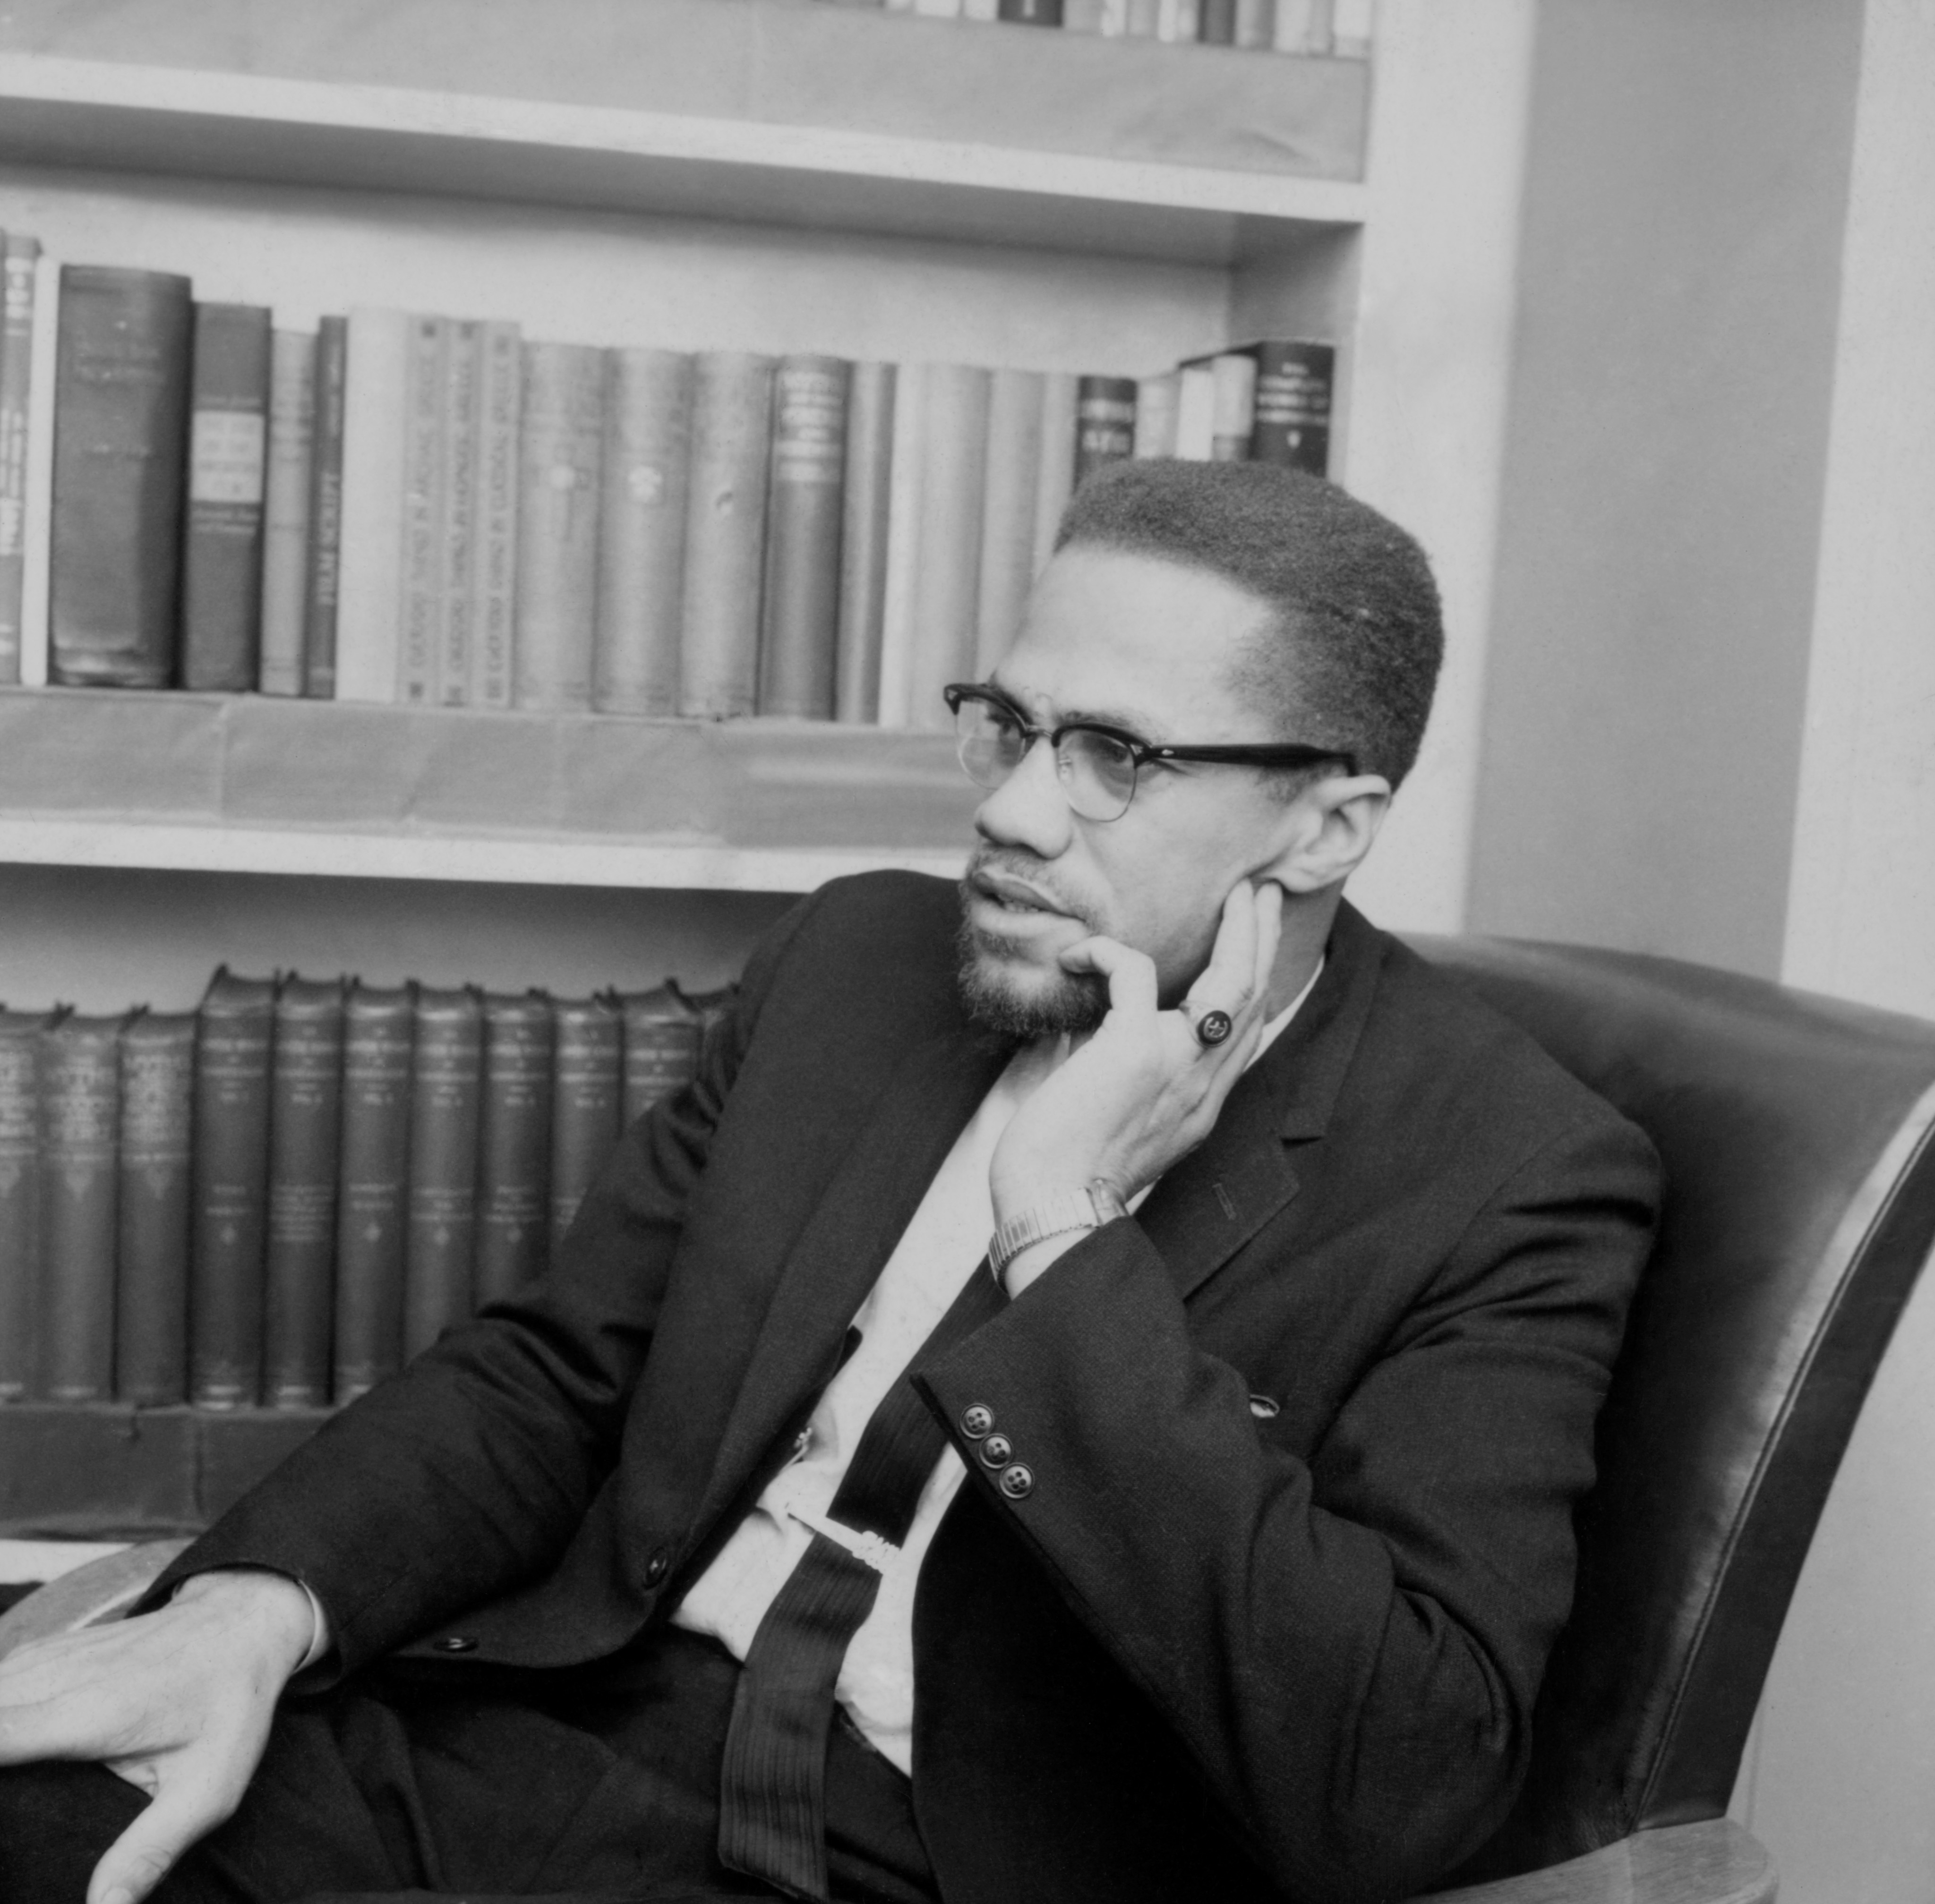 Politics - Malcolm X - BBC TV - 'The Negro in America' - London - 1964